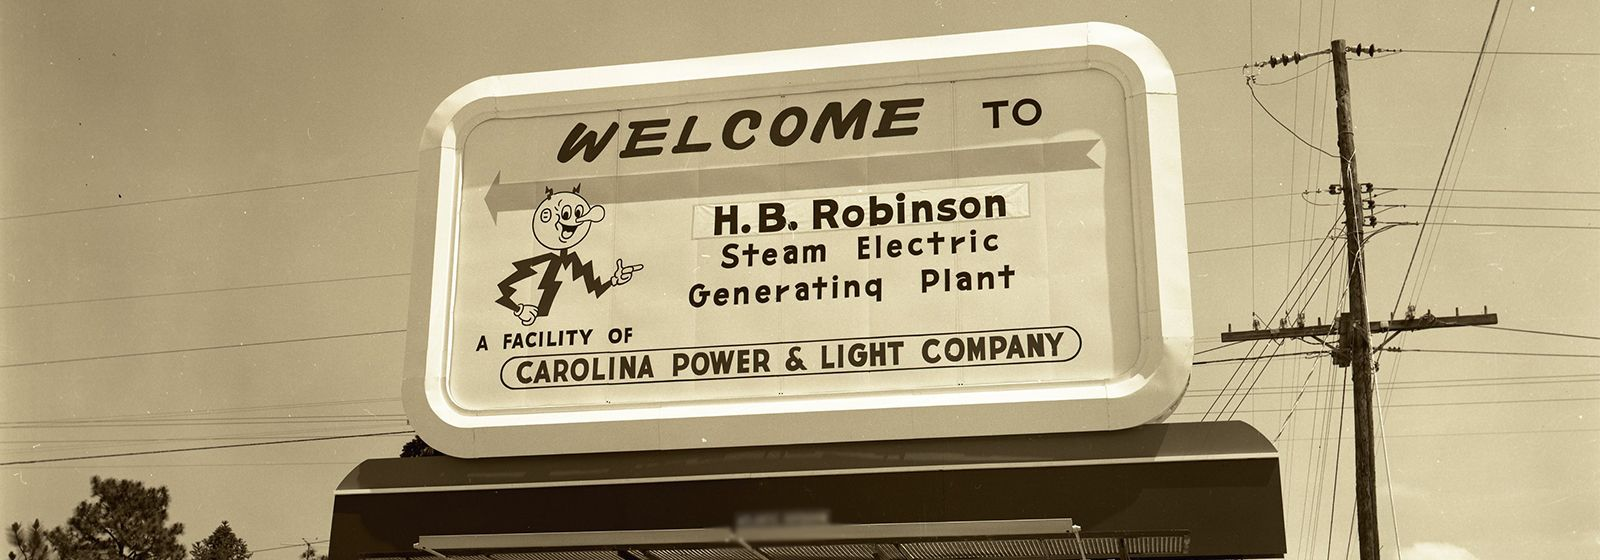 For Robinson Nuclear Plant's 50th, test your nuclear power knowledge